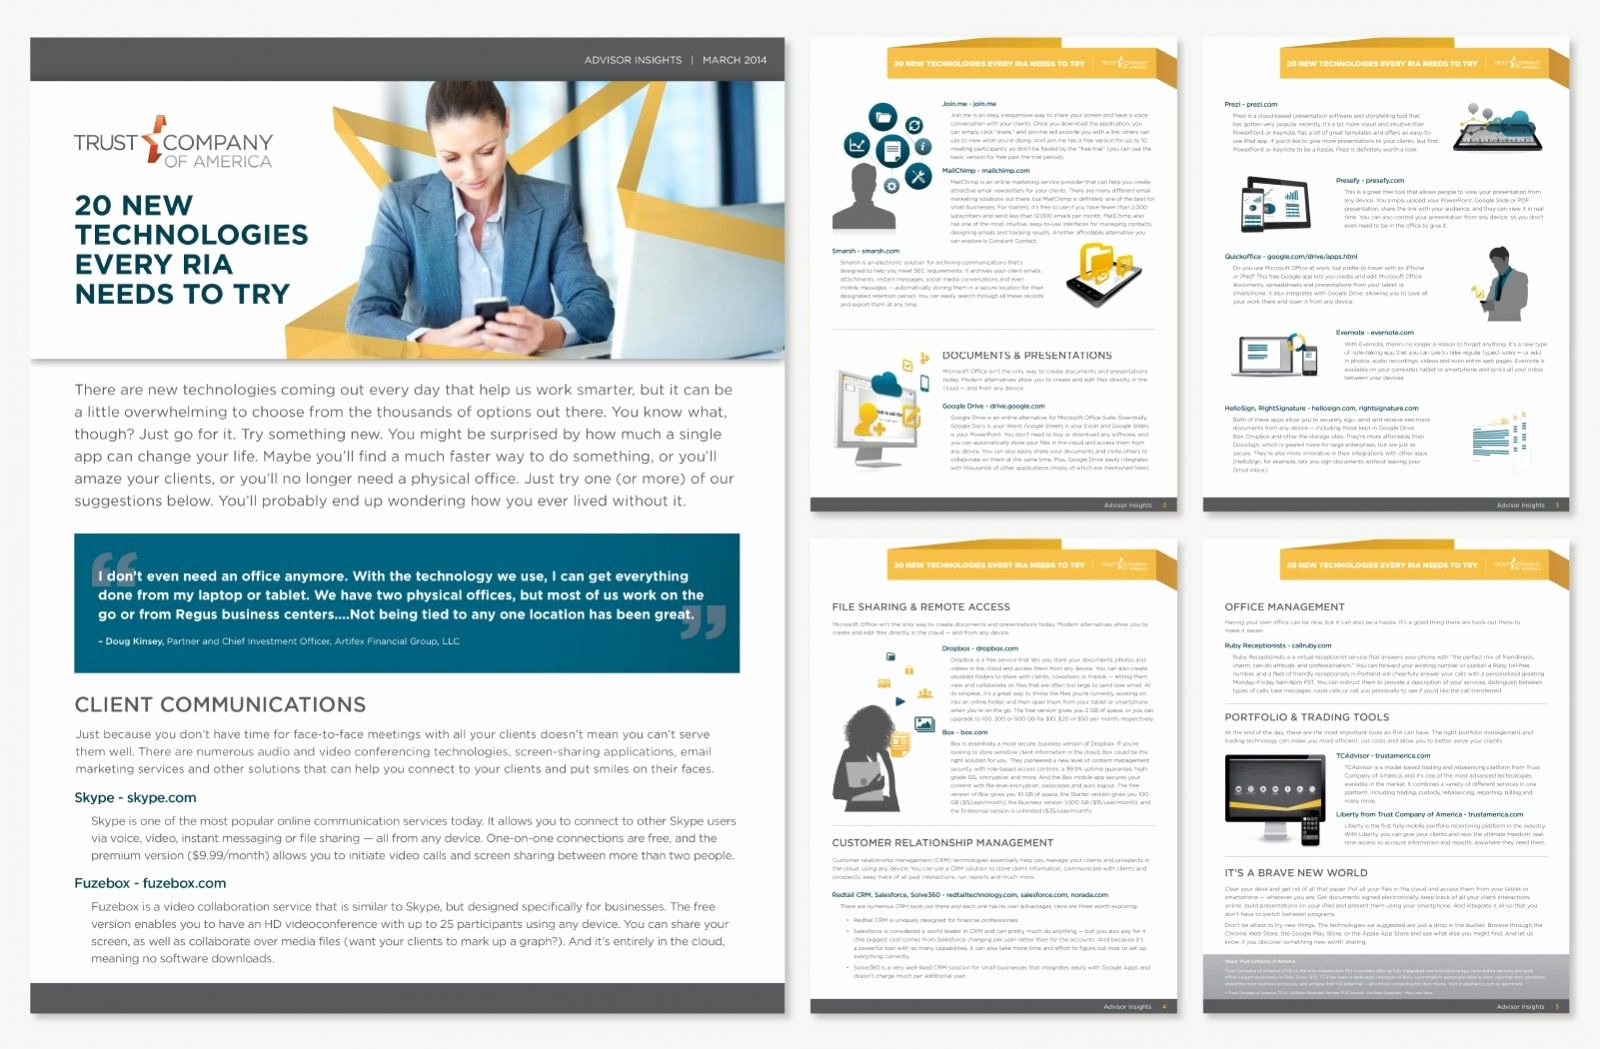 White Paper Design Template Lovely Trust Branded White Paper On the Virtual Work Environment